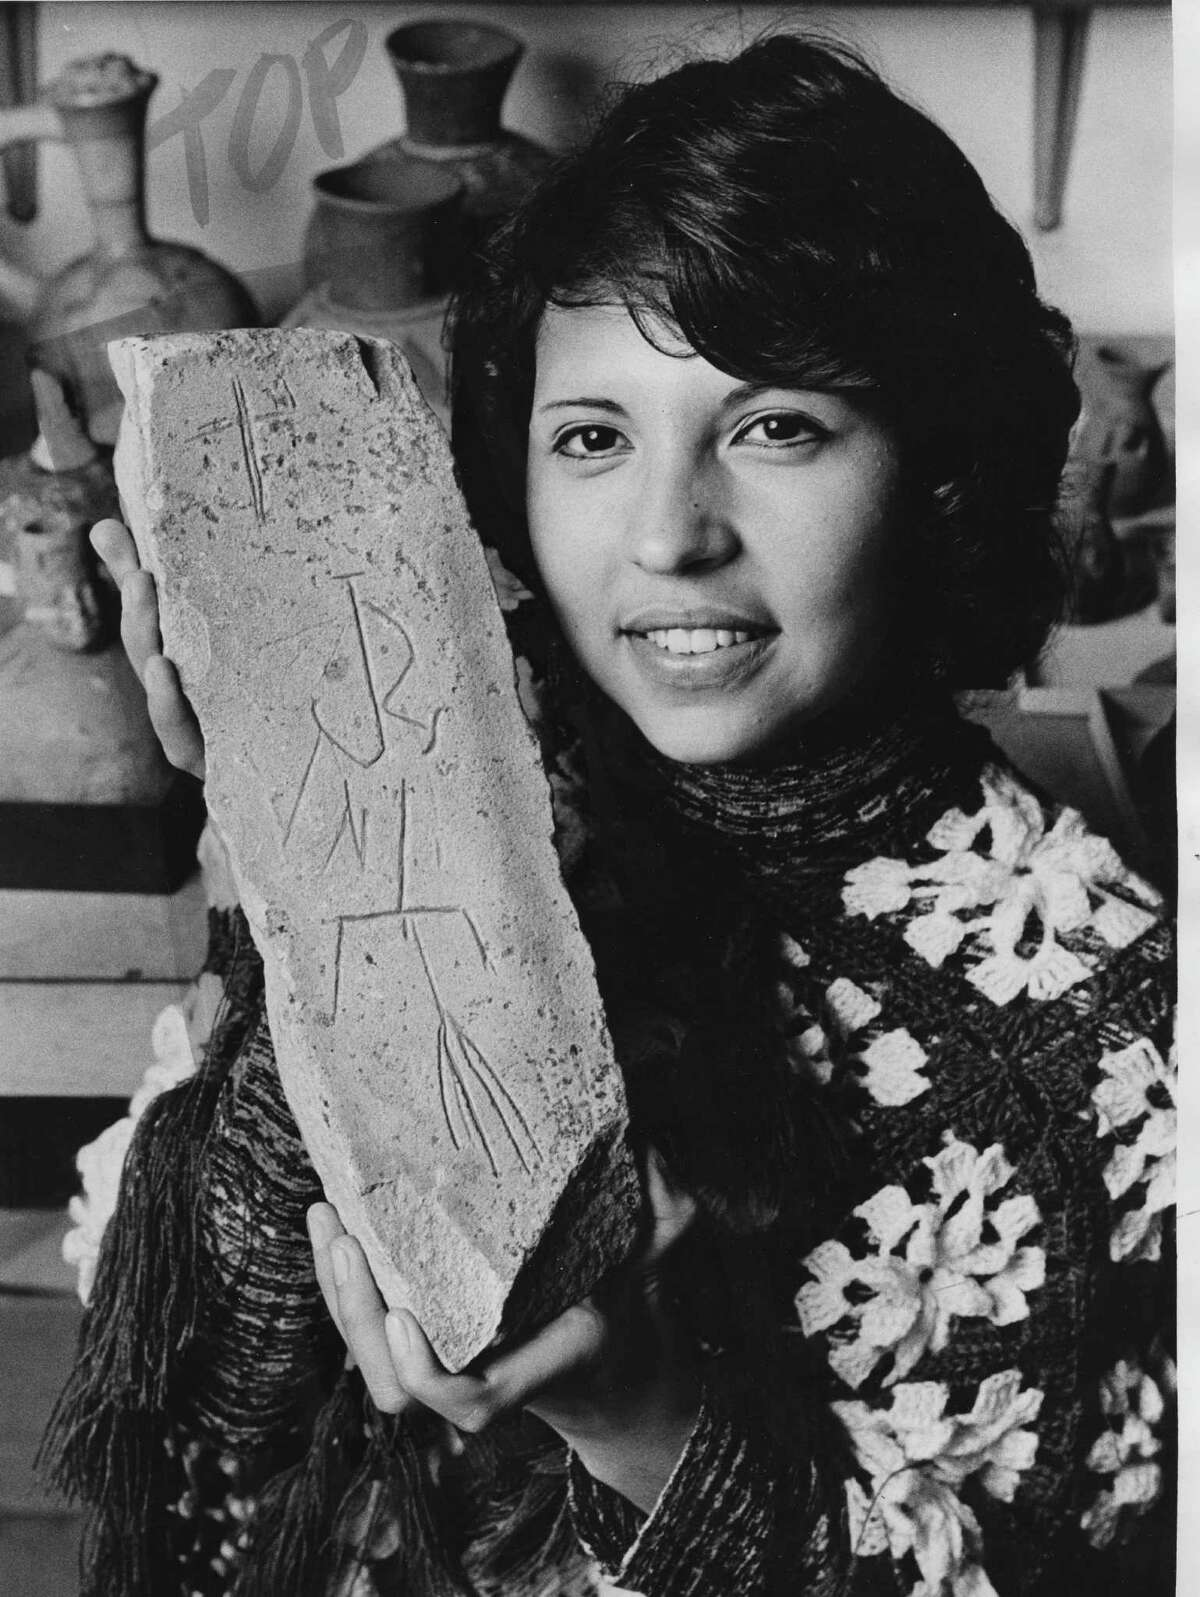 This rock, located at the Lowie Museum of Anthropology at University of California at Berkeley, is thought to be the headstone of Juan Rodriguez Cabrillo, early European explorer of California. Photo courtesy of University of California Berkeley (Dennis Galloway)